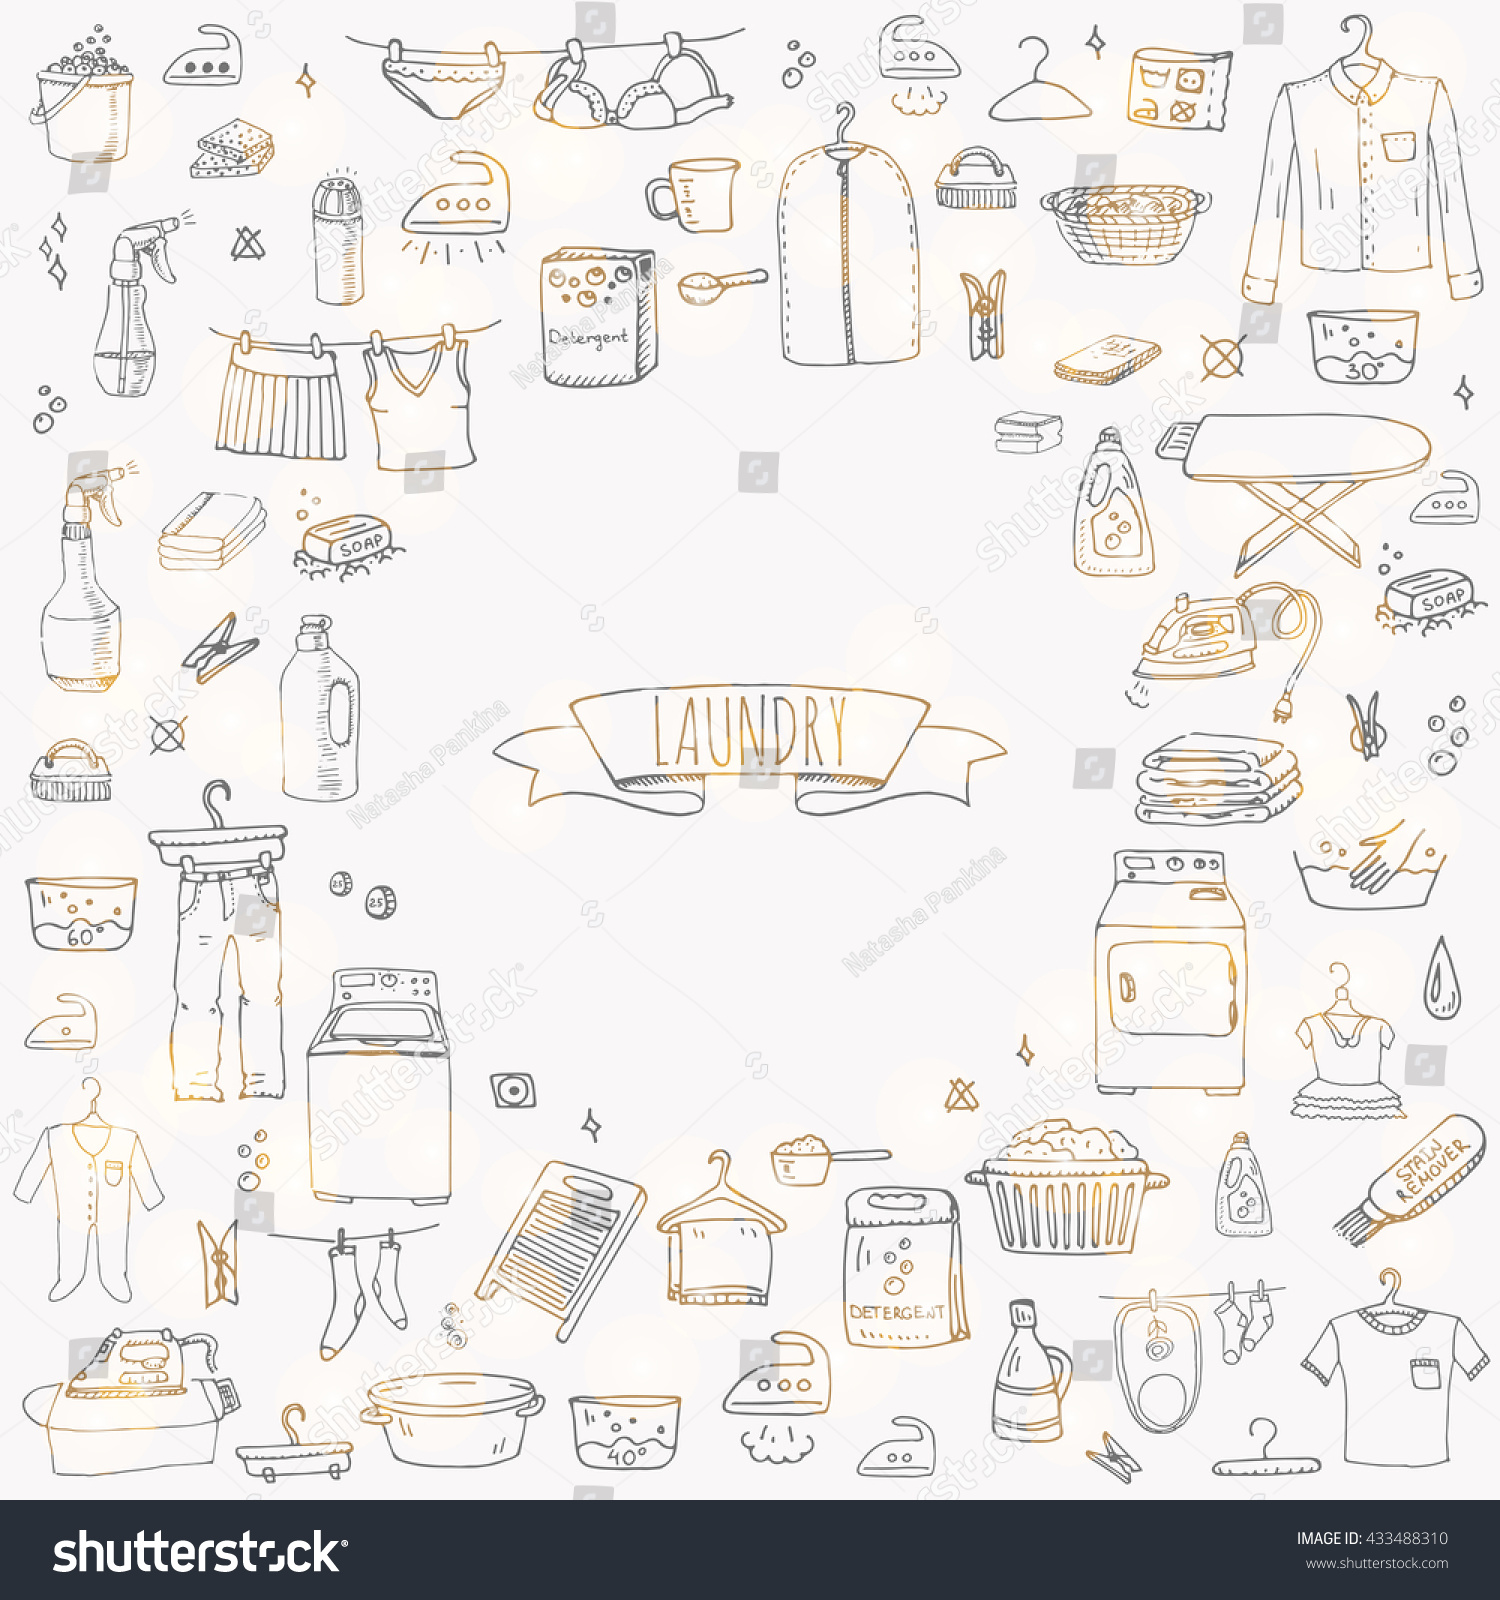 Hand Drawn Doodle Laundry Set Vector Stock Photo Photo Vector